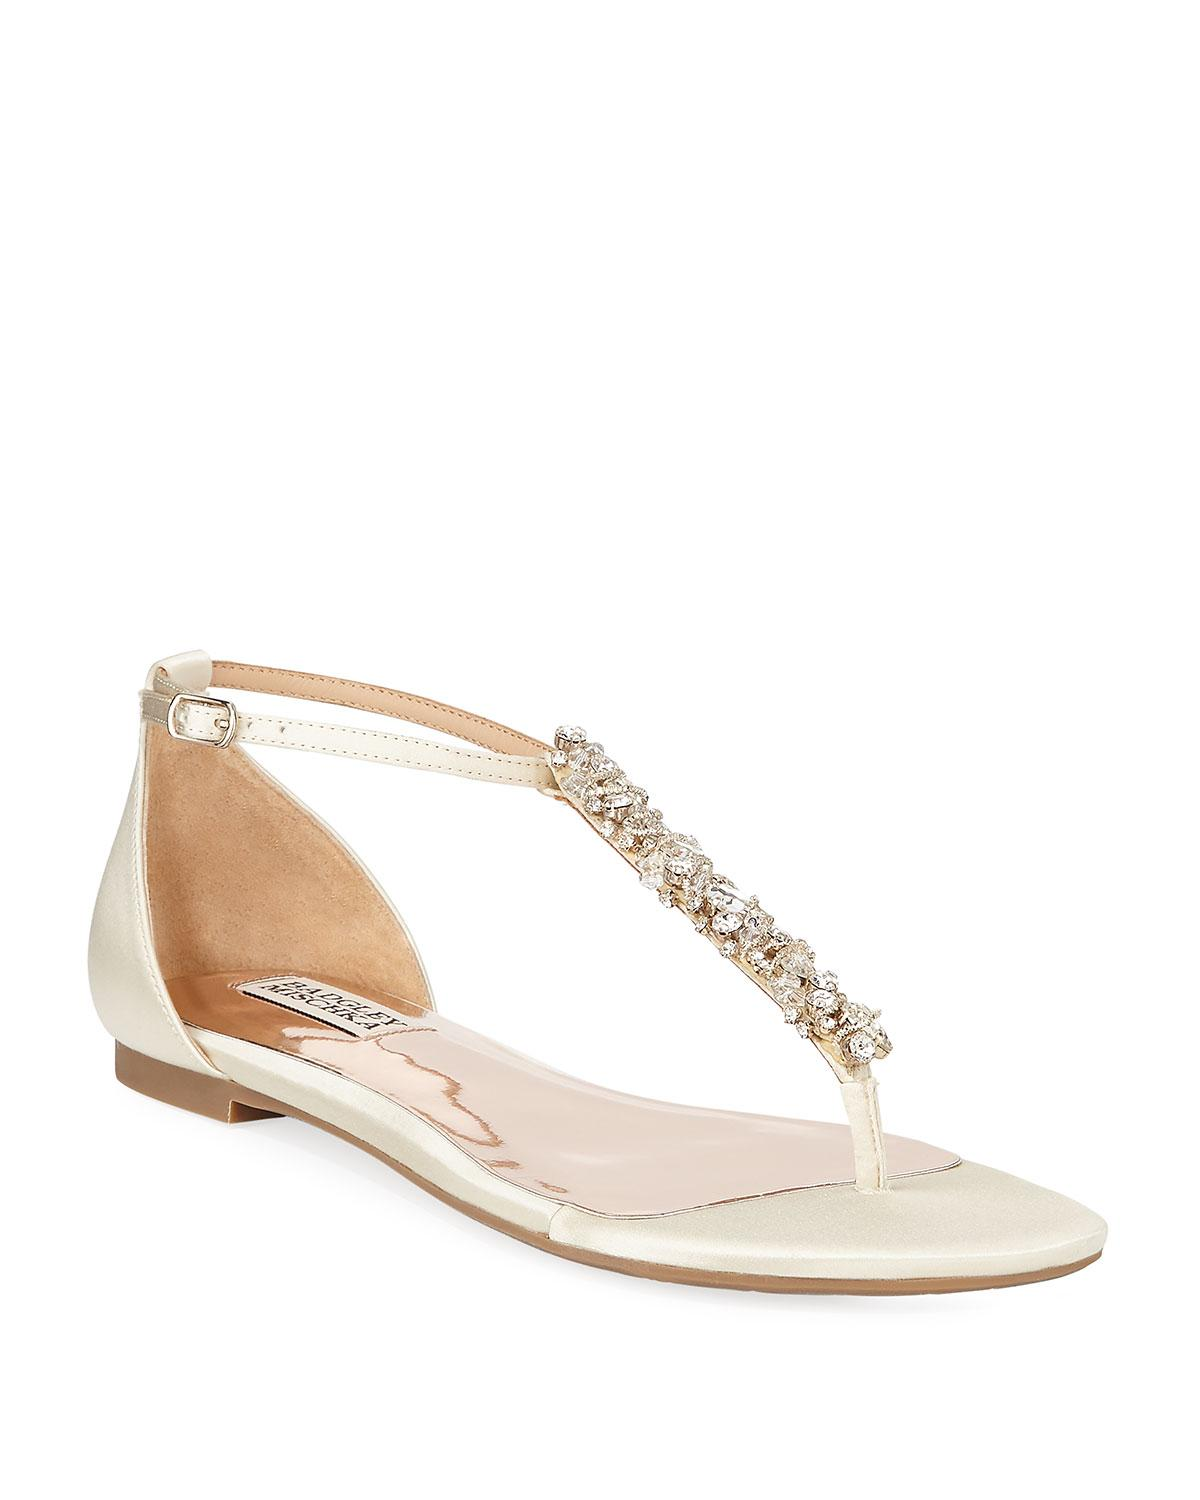 b6505f43caea Lyst - Badgley Mischka Holbrook Embellished T-strap Sandals in White